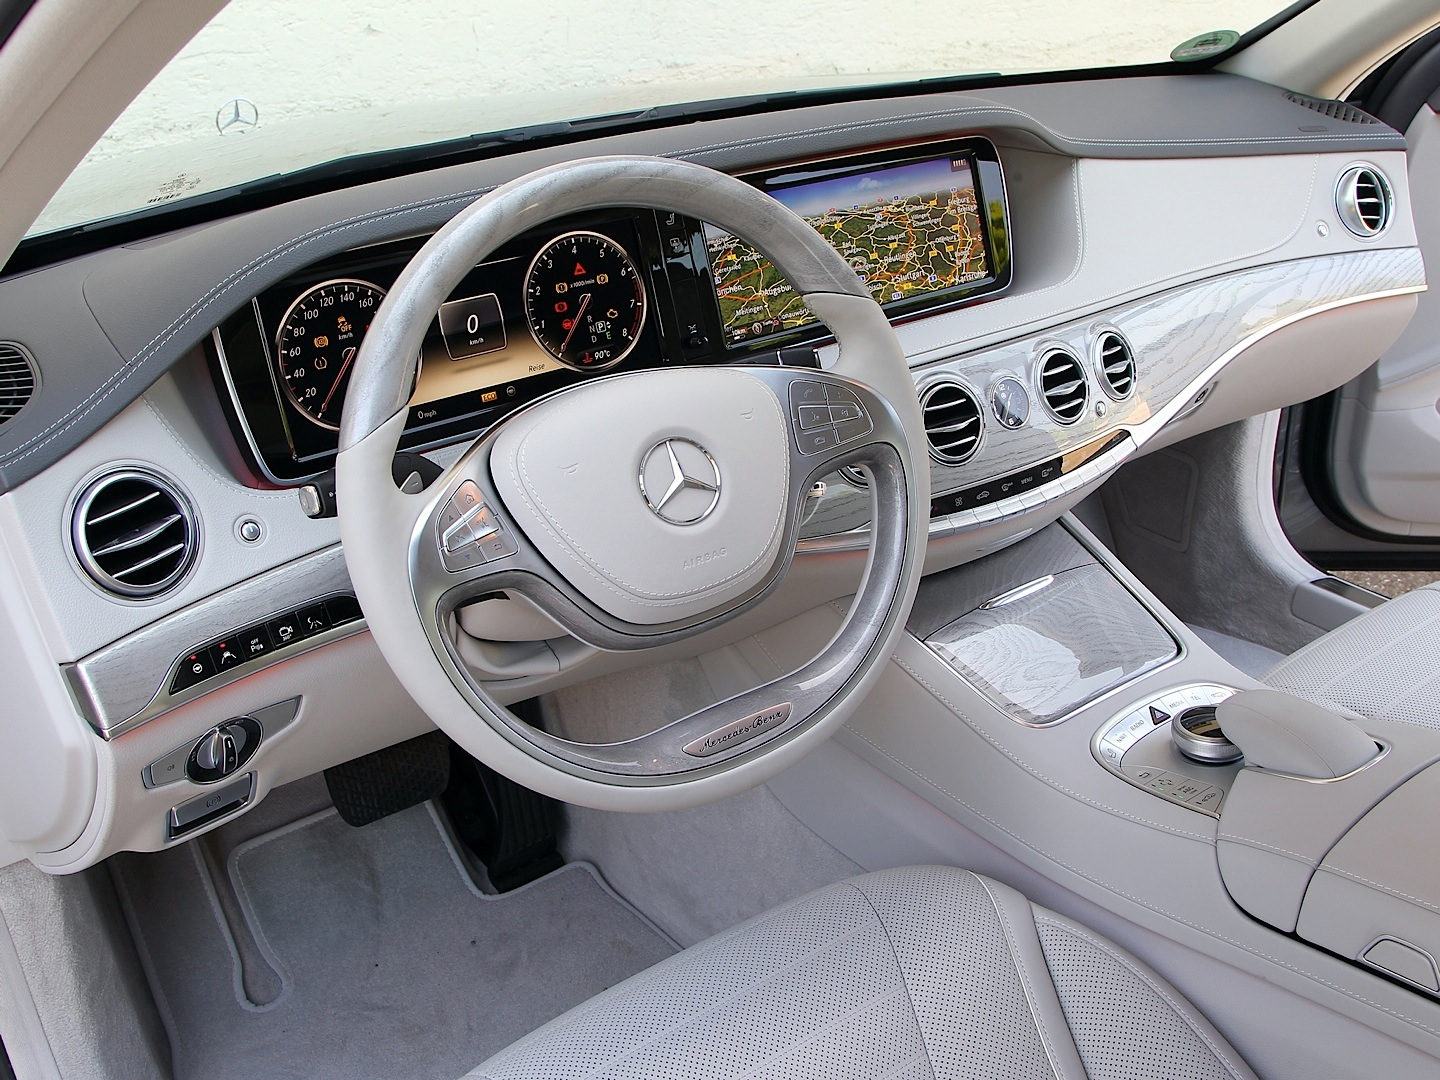 Mercedes benz s350 bluetec review by car autoevolution for How much is a 2014 mercedes benz s550